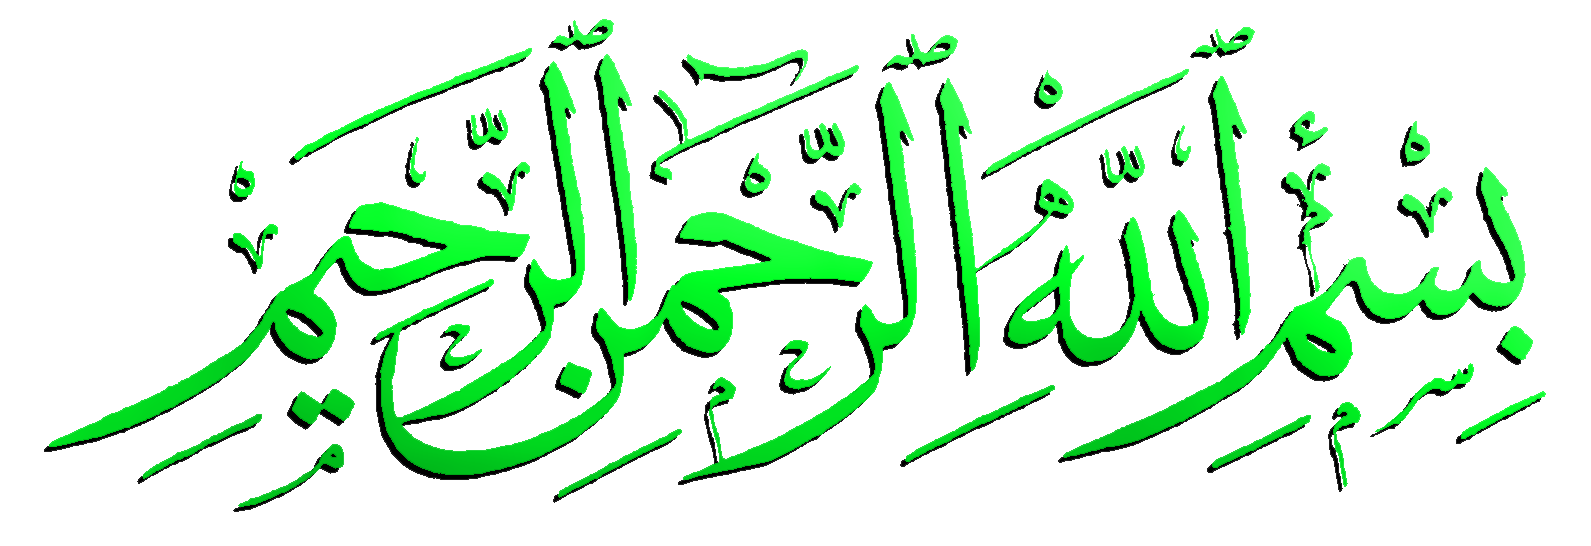 Bismillah Transparent PNG Pictures - Free Icons and PNG ...